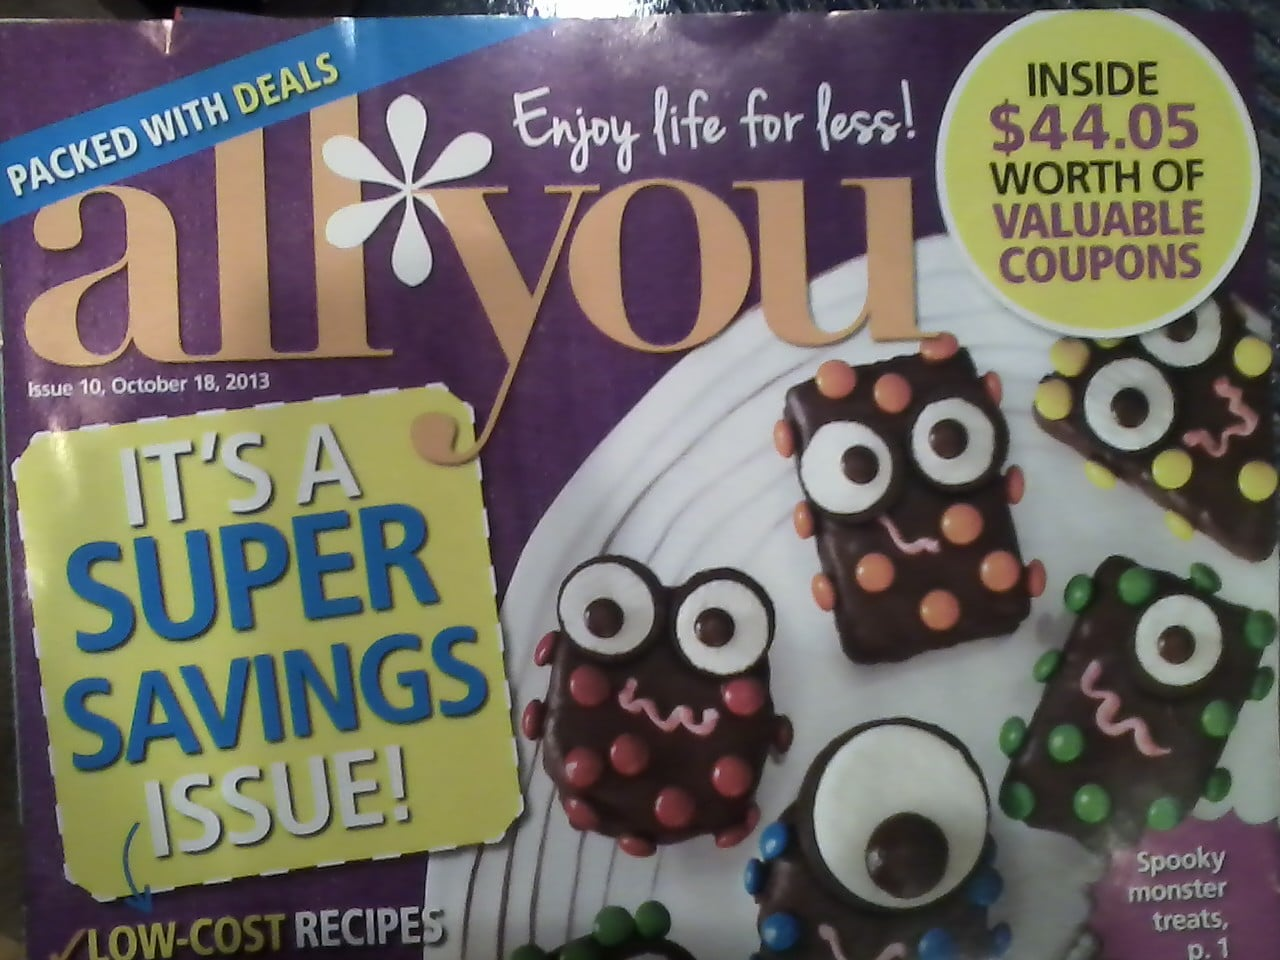 All You October issue